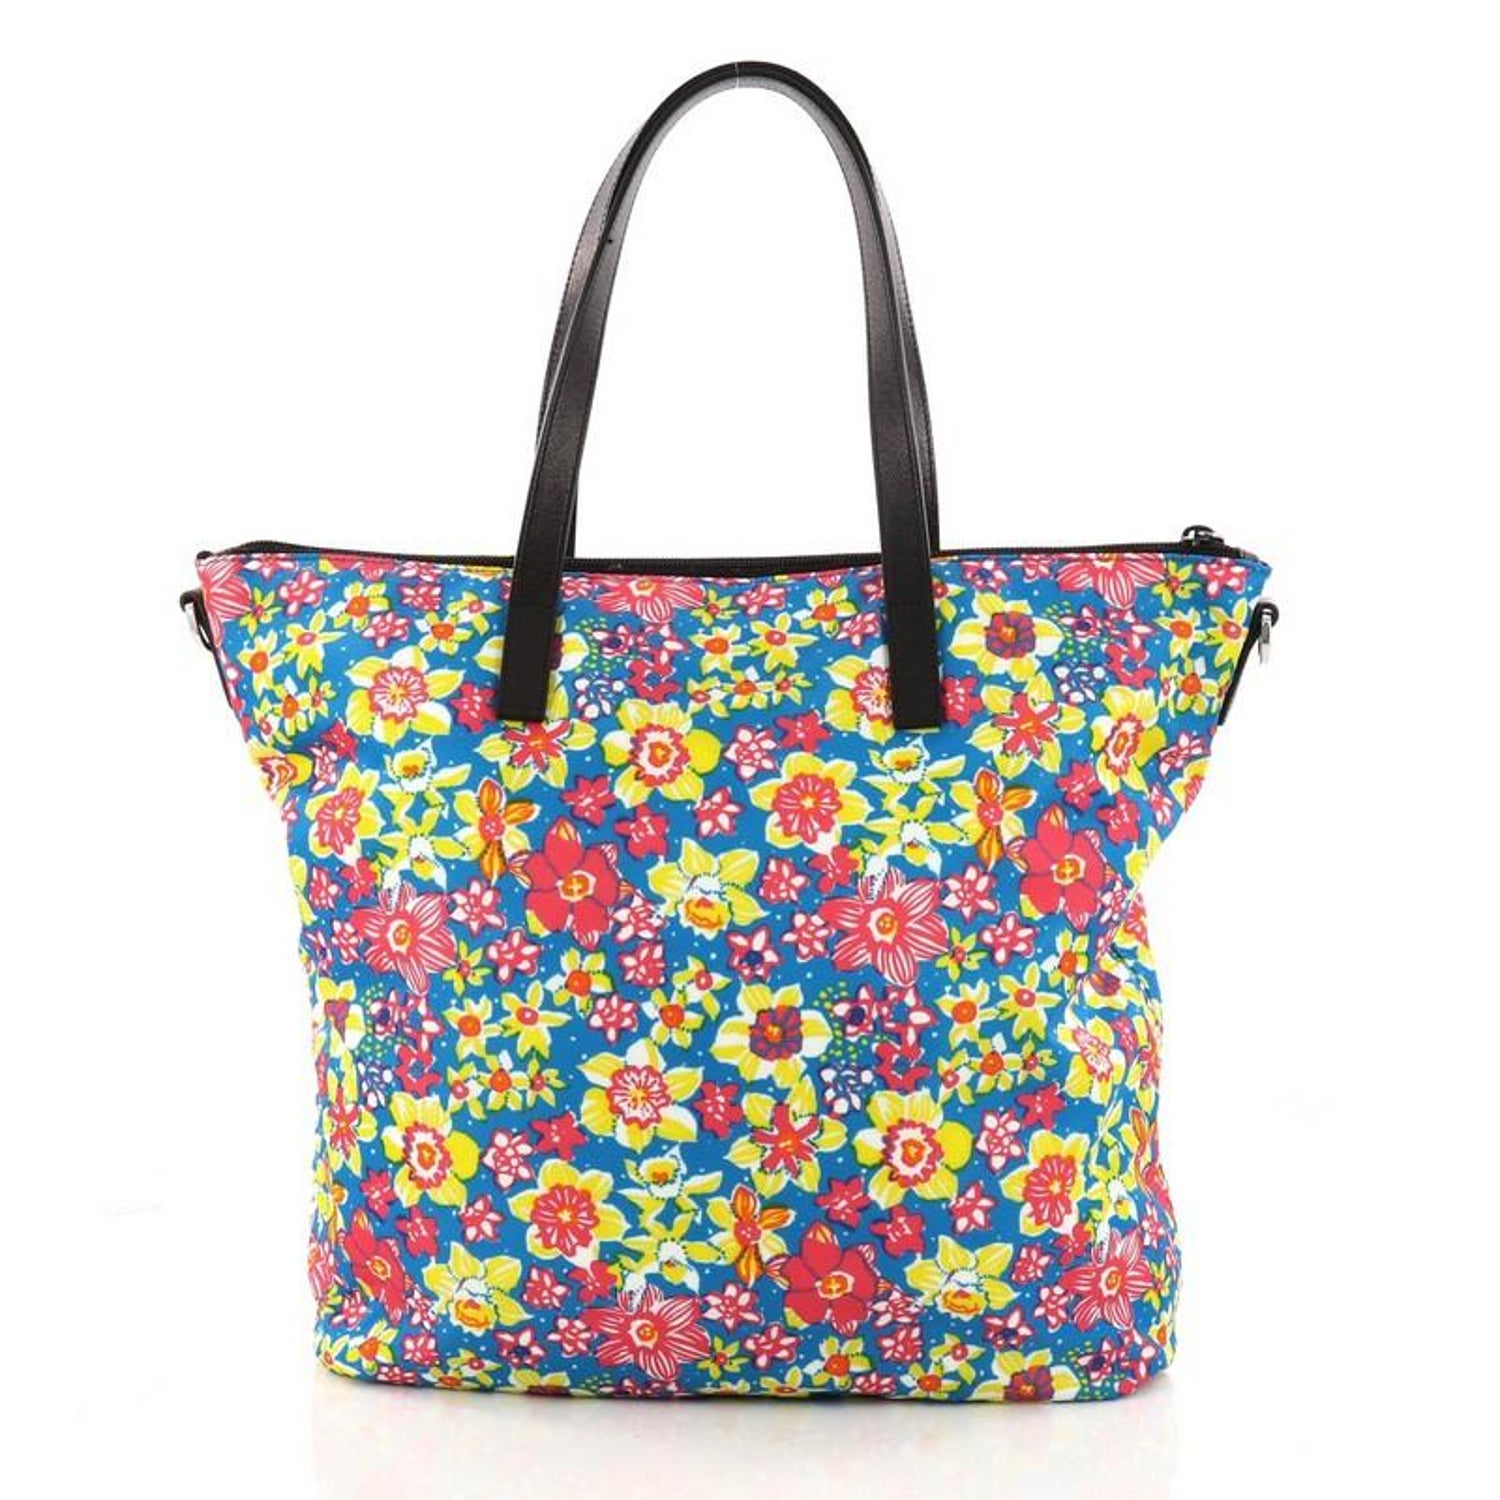 282f739ab8c4 Prada Convertible Tote Printed Tessuto With Saffiano Large For Sale at  1stdibs